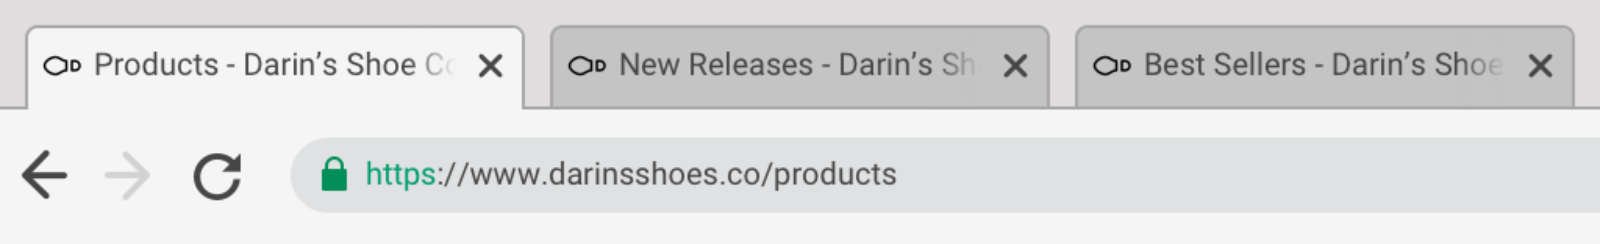 """Browser interface with three tabs labelled """"Products - Darin's Shoe Company"""", """"New Releases - Darin's Shoe Company"""", and """"Best Sellers - Darin's Shoe Company"""""""